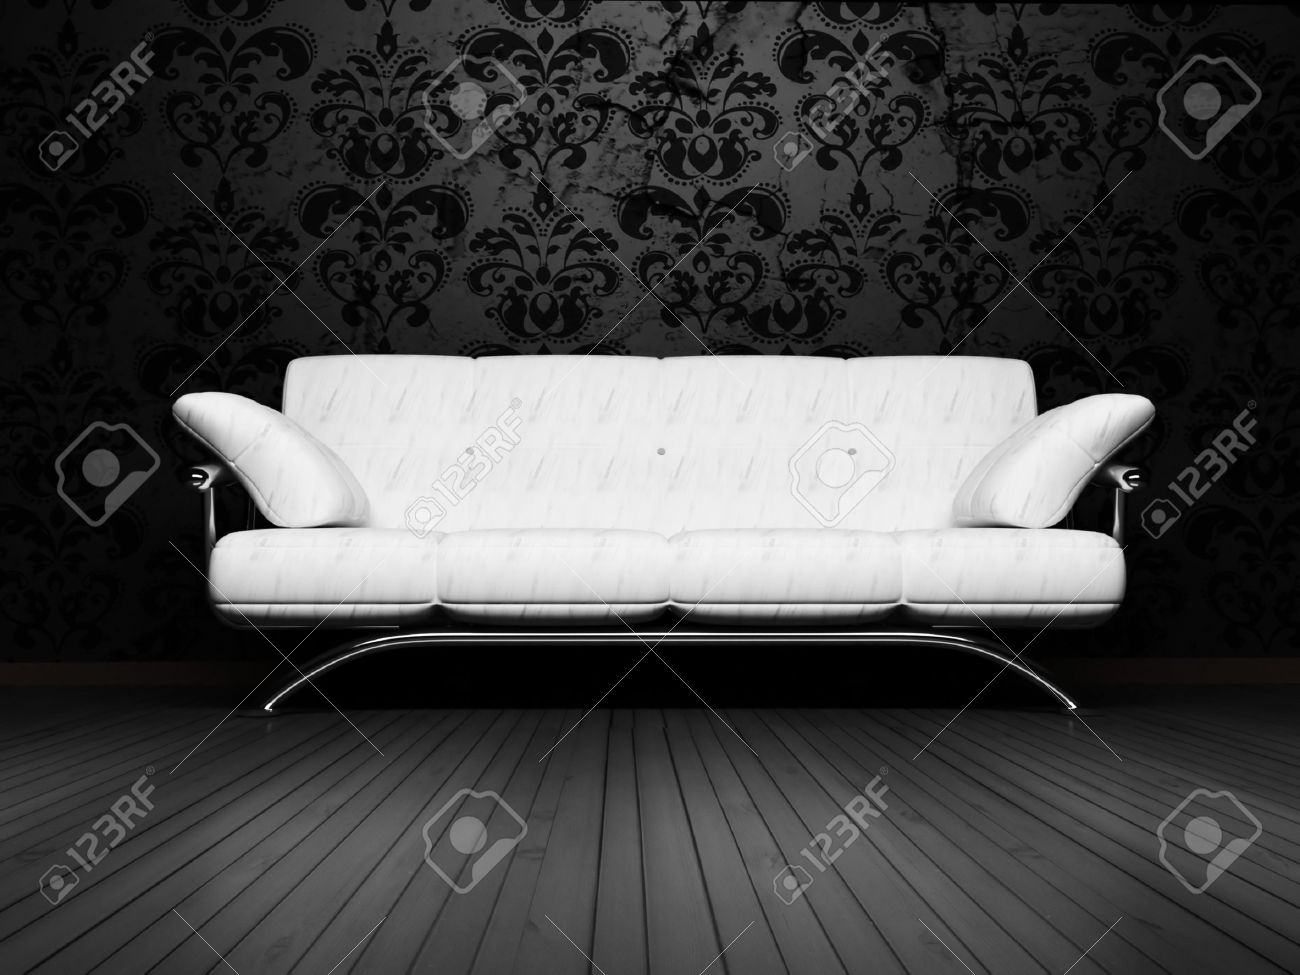 Modern  interior design of living room with a  royal white sofa on the vintage background Stock Photo - 12903131